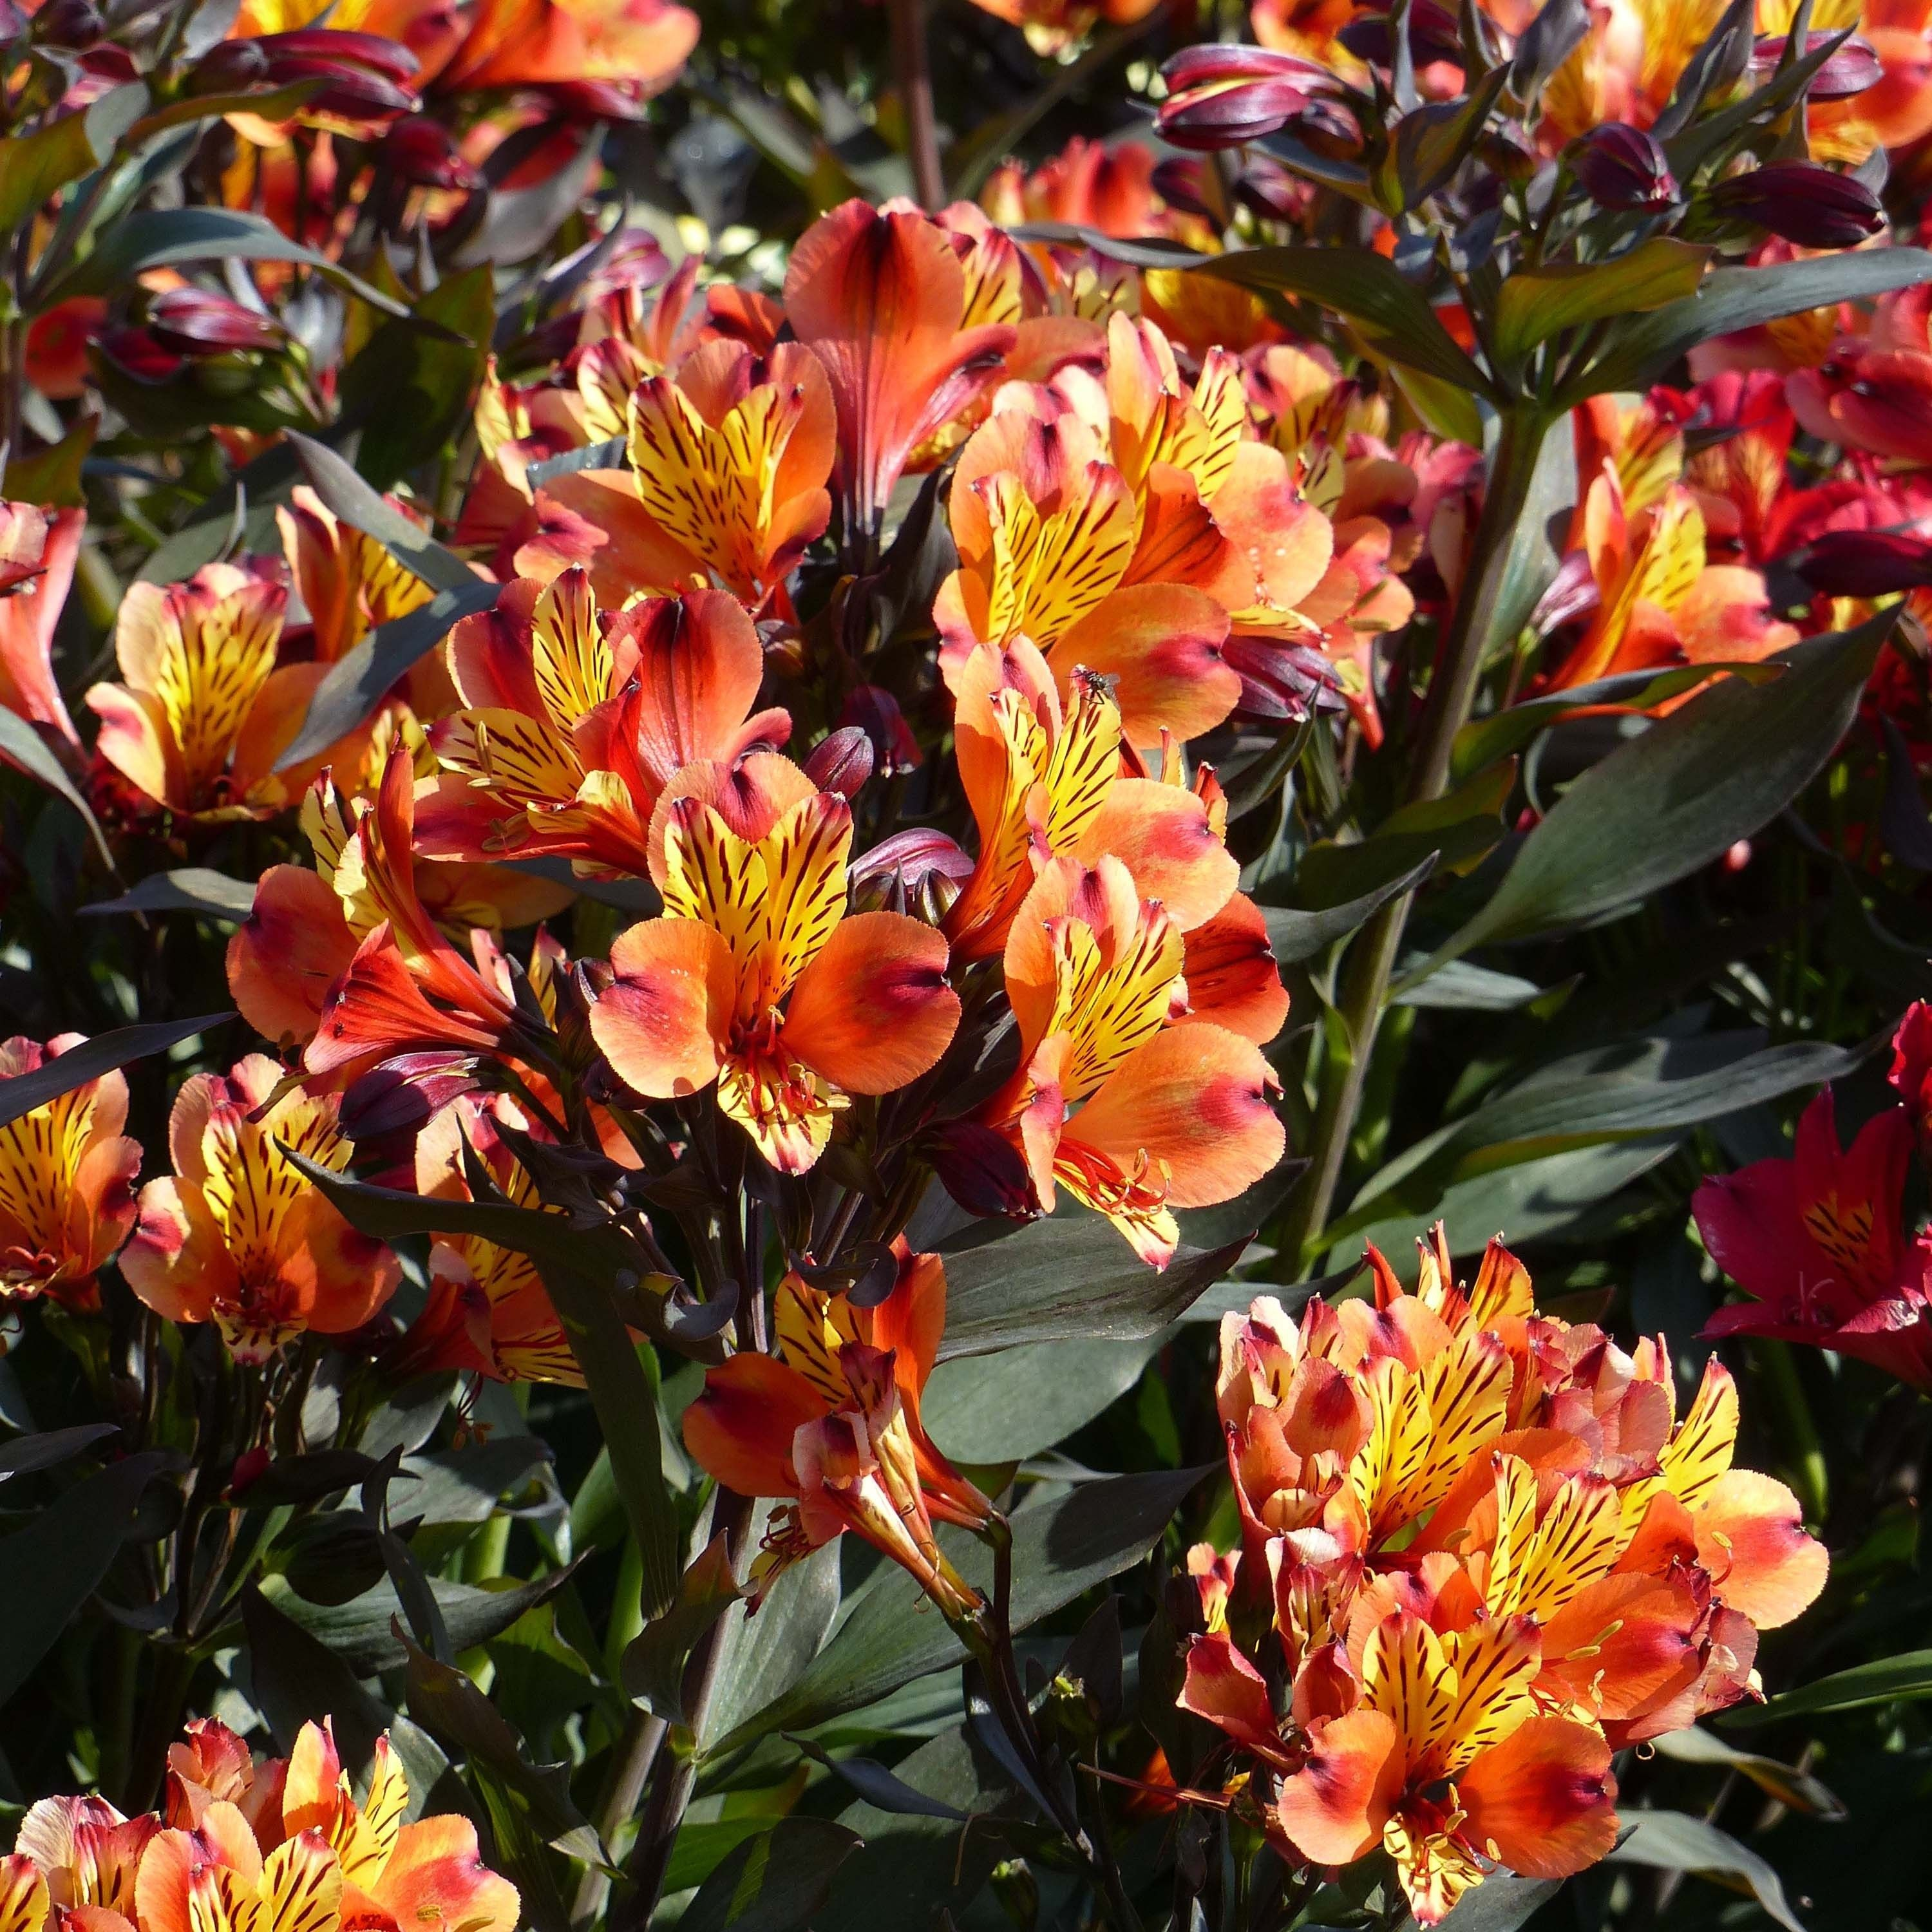 Alstroemeria Indian Summer - Lis des Incas